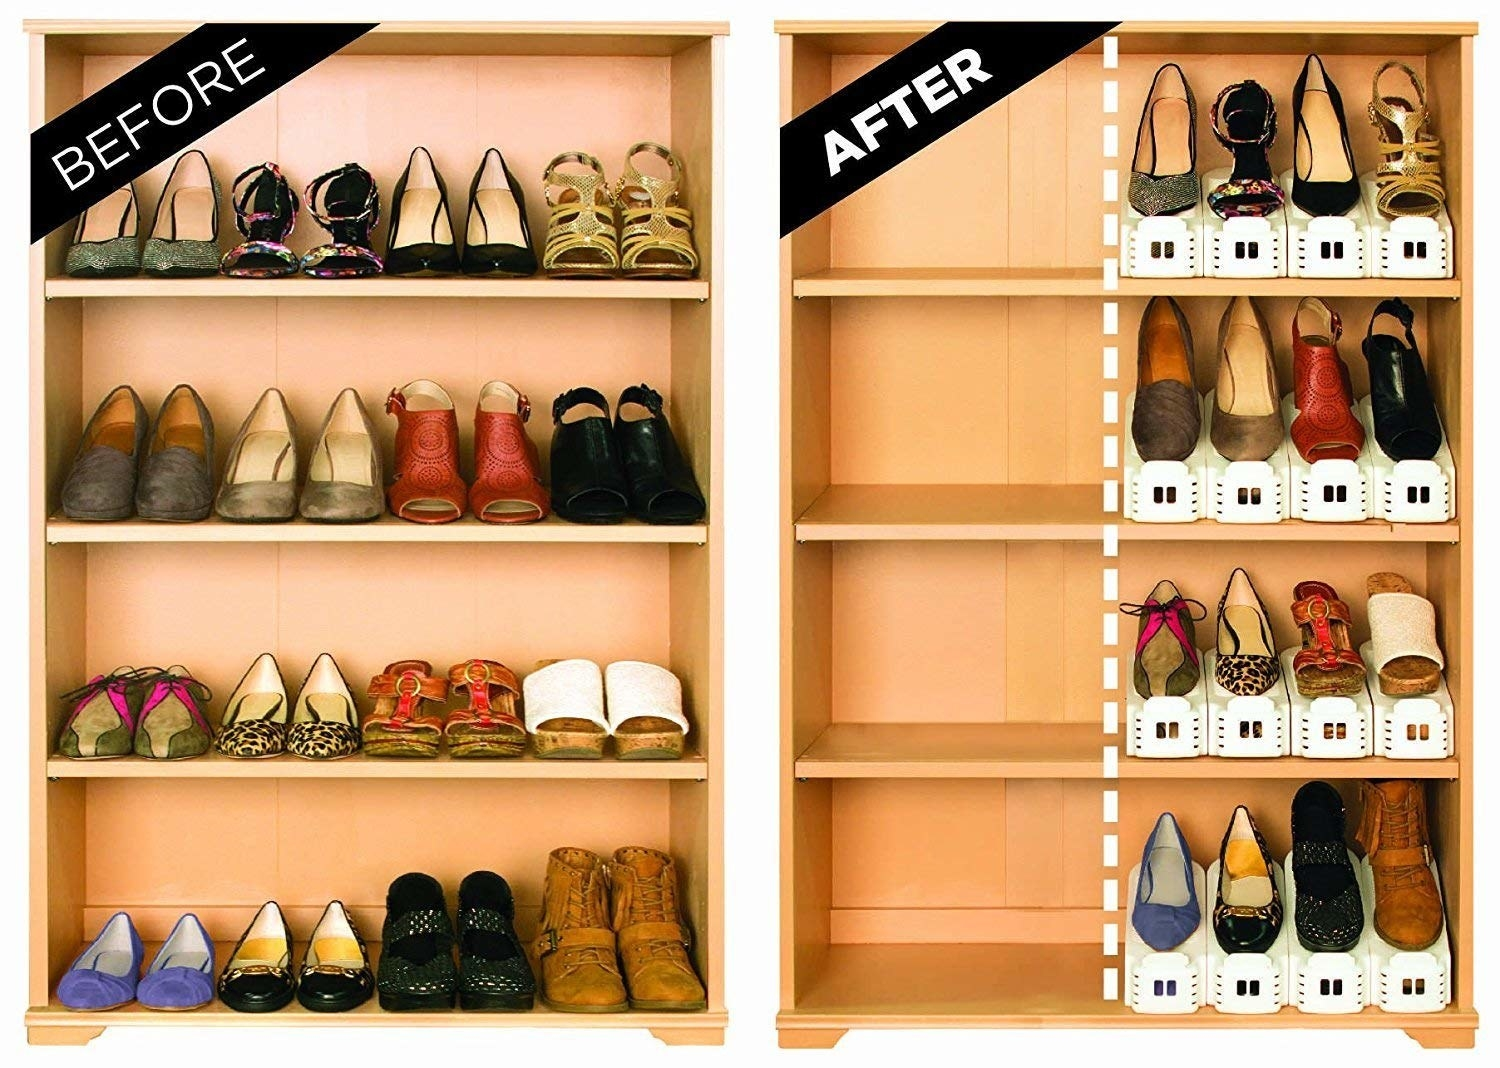 Left: A set of shelves with 16 pairs of shoes taking up the whole space / right: the same shelves, but the shoes are taking up only half the space thanks to the stacking shoe slotz